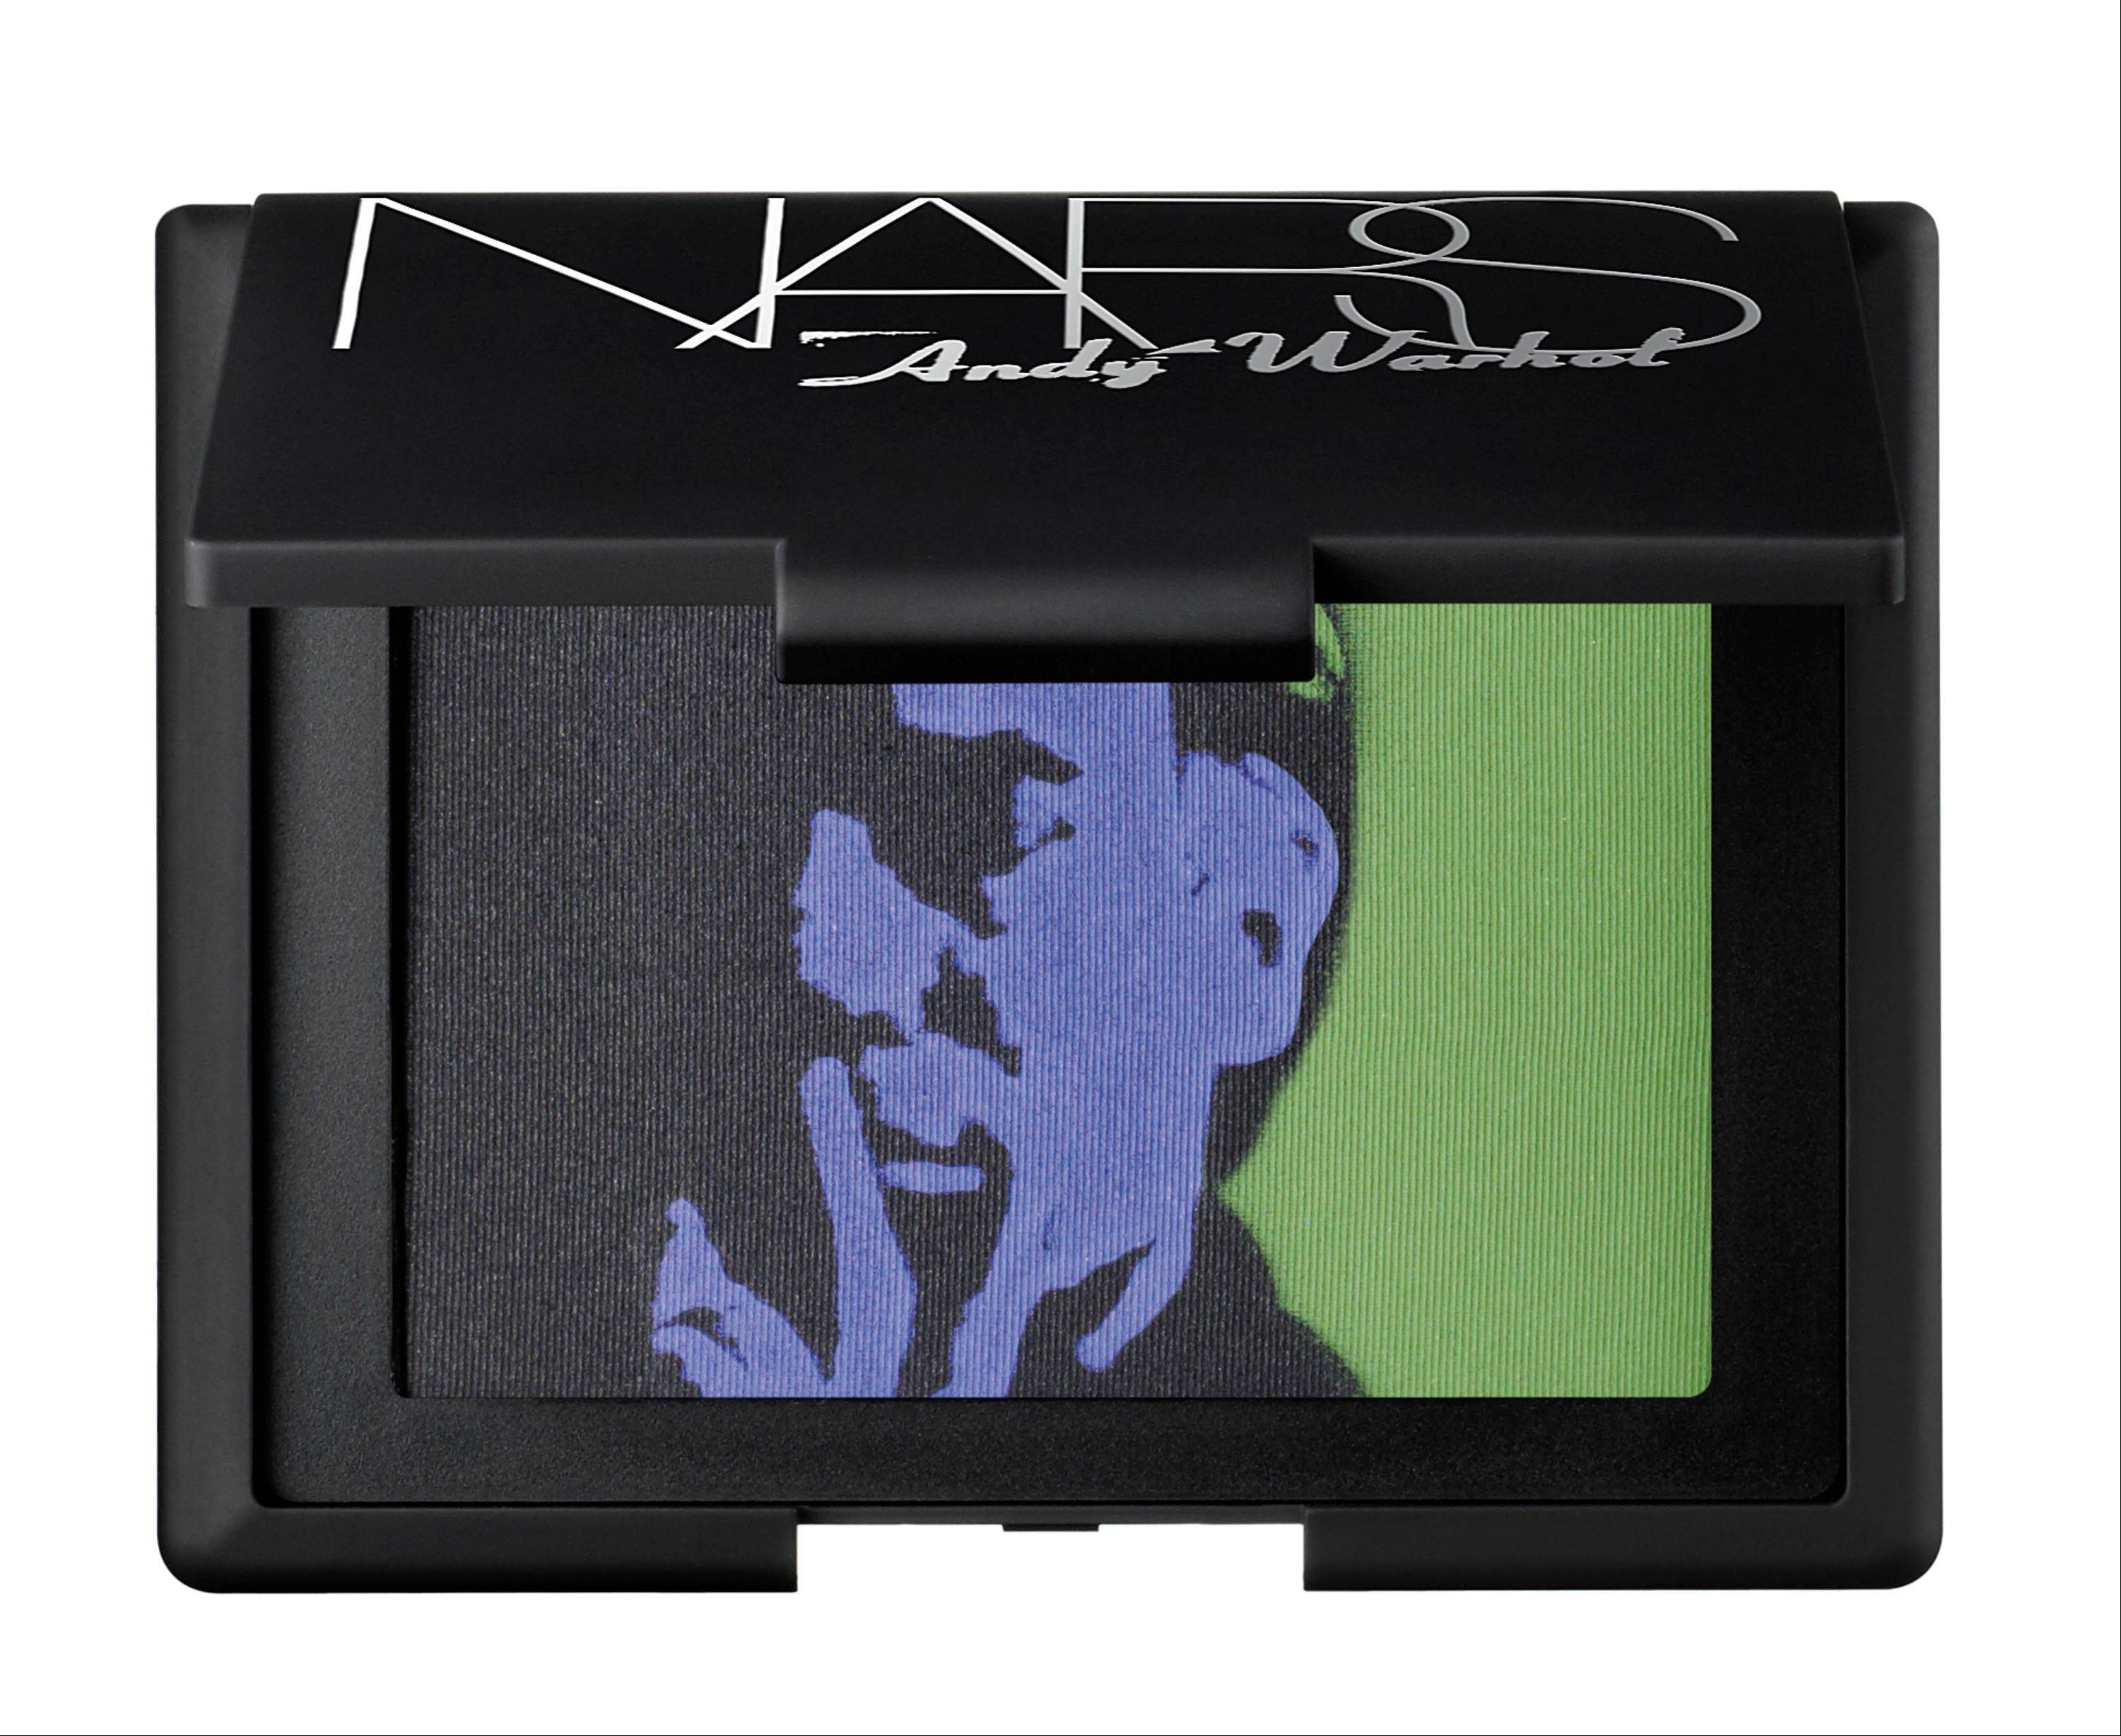 This undated product photo released by Nars Cosmetics shows eye shadow from the Andy Warhol collection. Francois Nars' company has taken on Andy Warhol's silvery Factory, silkscreened superstars and avant-garde films in a limited-edition cosmetic collection, exclusive to Sephora stores until Nov. 1.